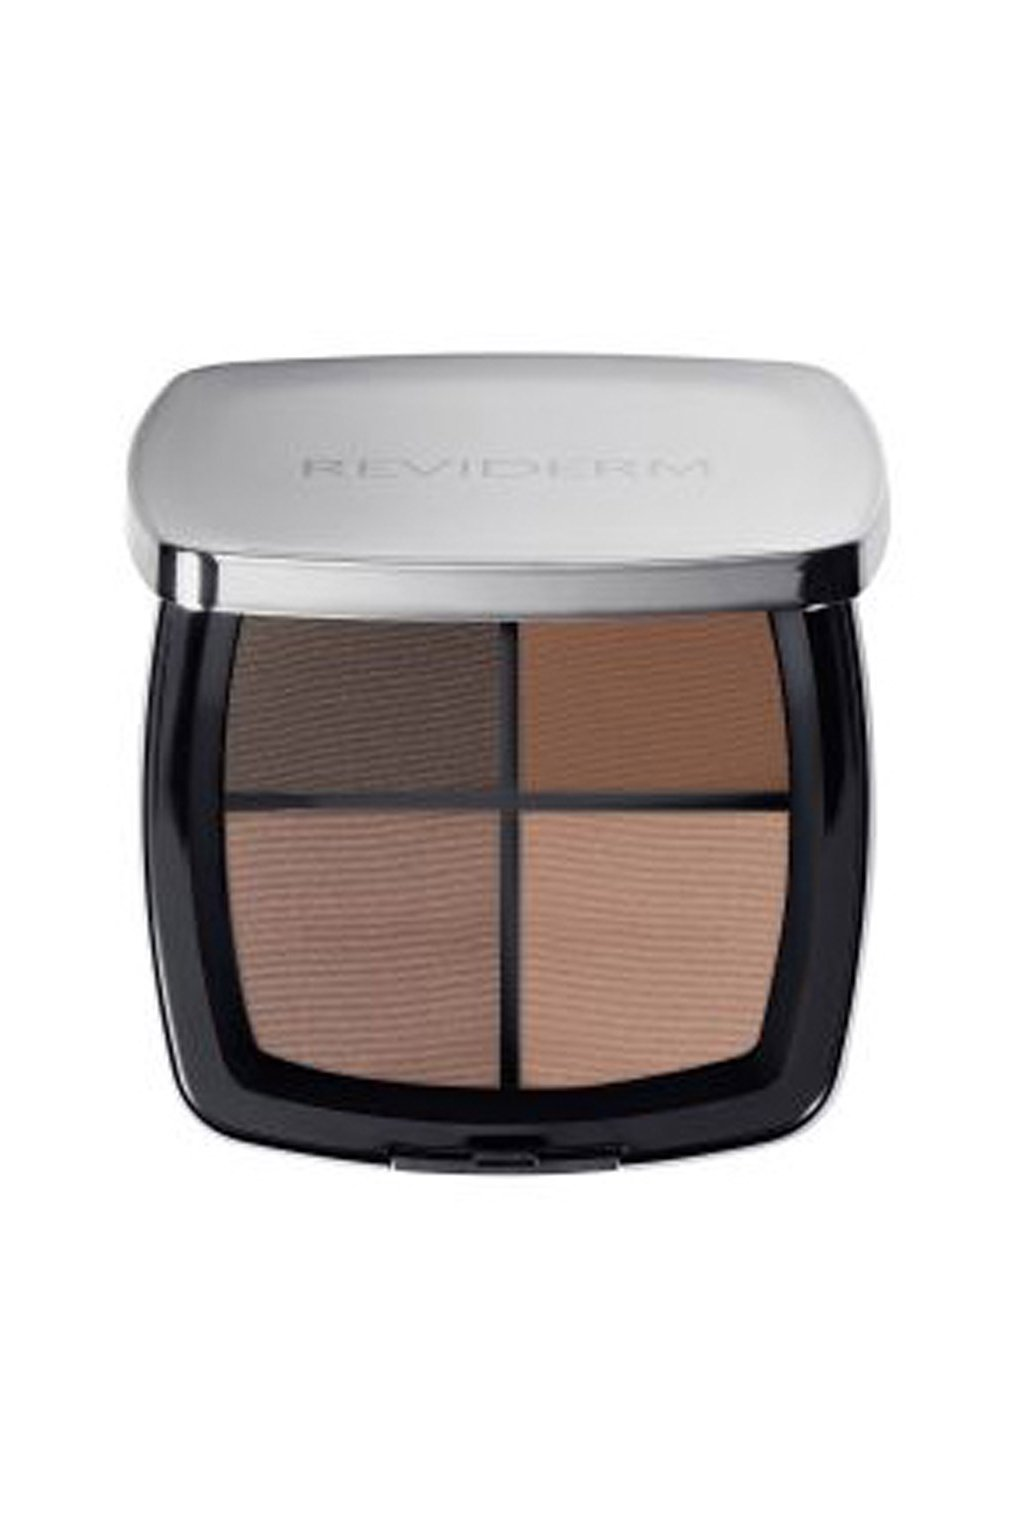 Mineral Quatro Eyeshadow 1W Chocolate Shades | 8 g